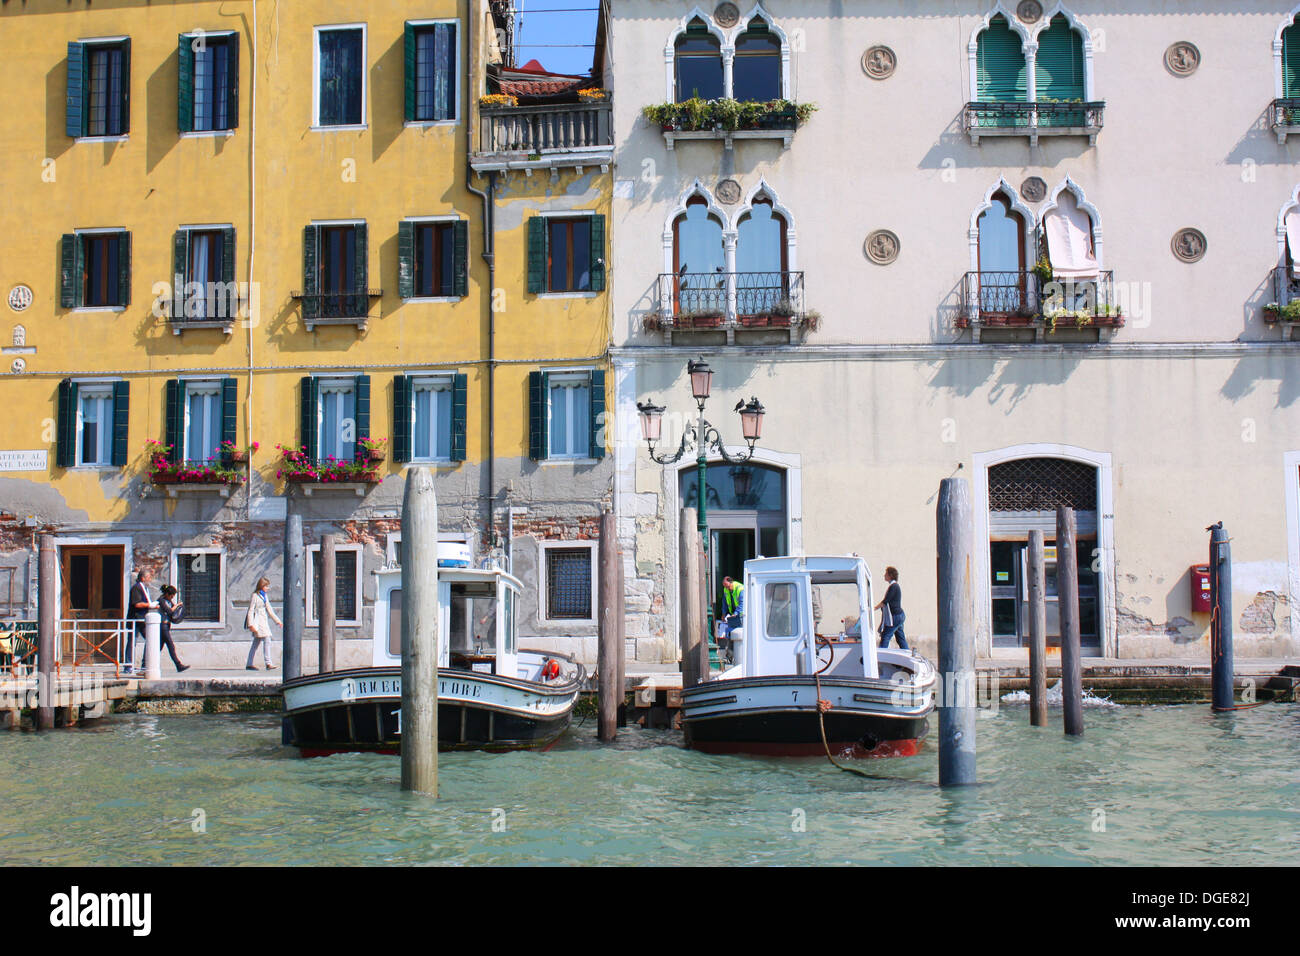 Boats and buildings in Venice, Italy Stock Photo